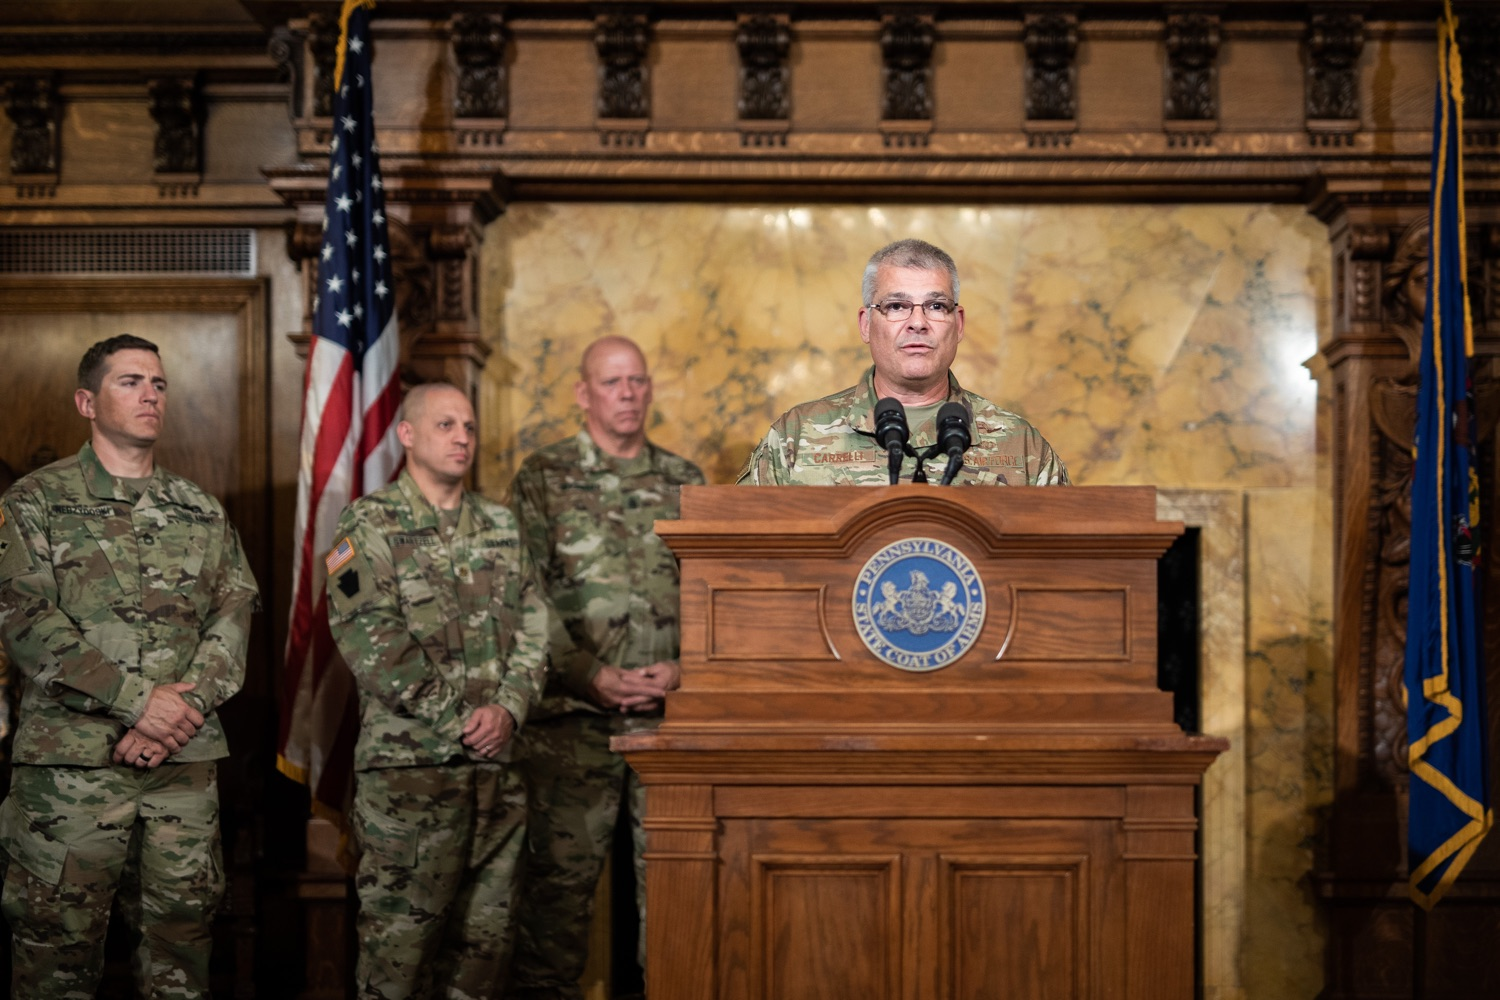 "<a href=""http://filesource.abacast.com/commonwealthofpa/photo/17423_gov_trip_recap_dz_014.jpg"" target=""_blank"">⇣ Download Photo<br></a>Harrisburg, PA  Adjutant General Maj. General Tony Carrelli about his recent visit to Lithuania and Poland. Governor Tom Wolf today highlighted the second half of his trip abroad, including visiting with more than 500 PA National Guard (PNG) troops in Poland, and honoring the Tree of Life synagogue victims at the Auschwitz-Birkenau Memorial. Tuesday, September 17, 2019"